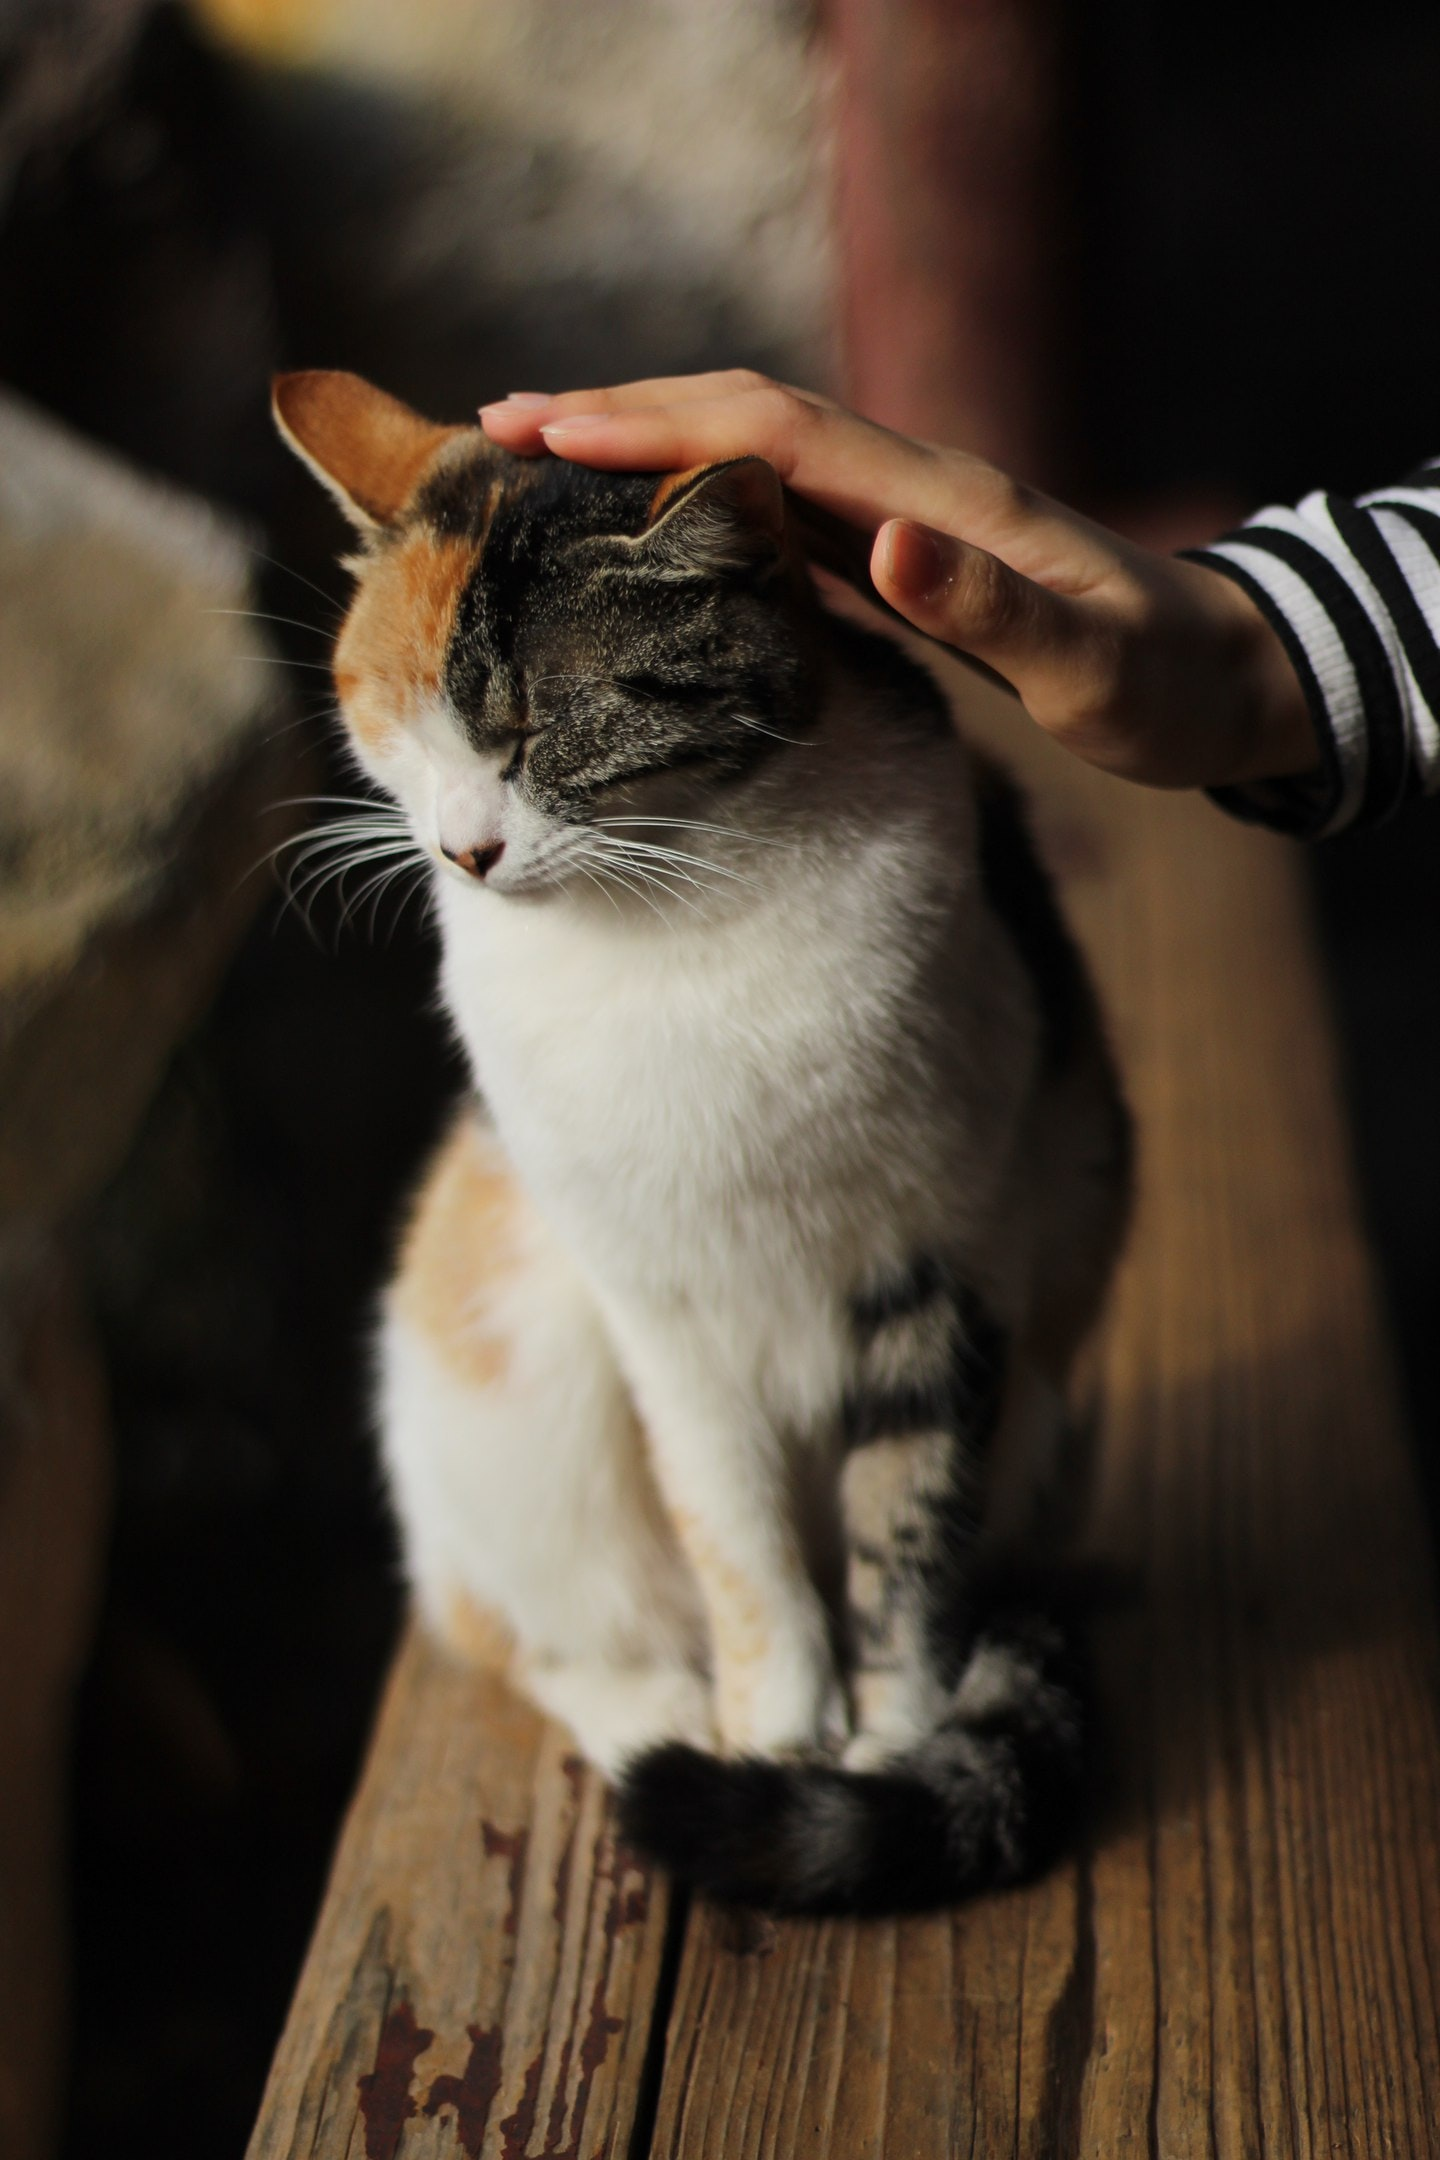 person touching cat's head